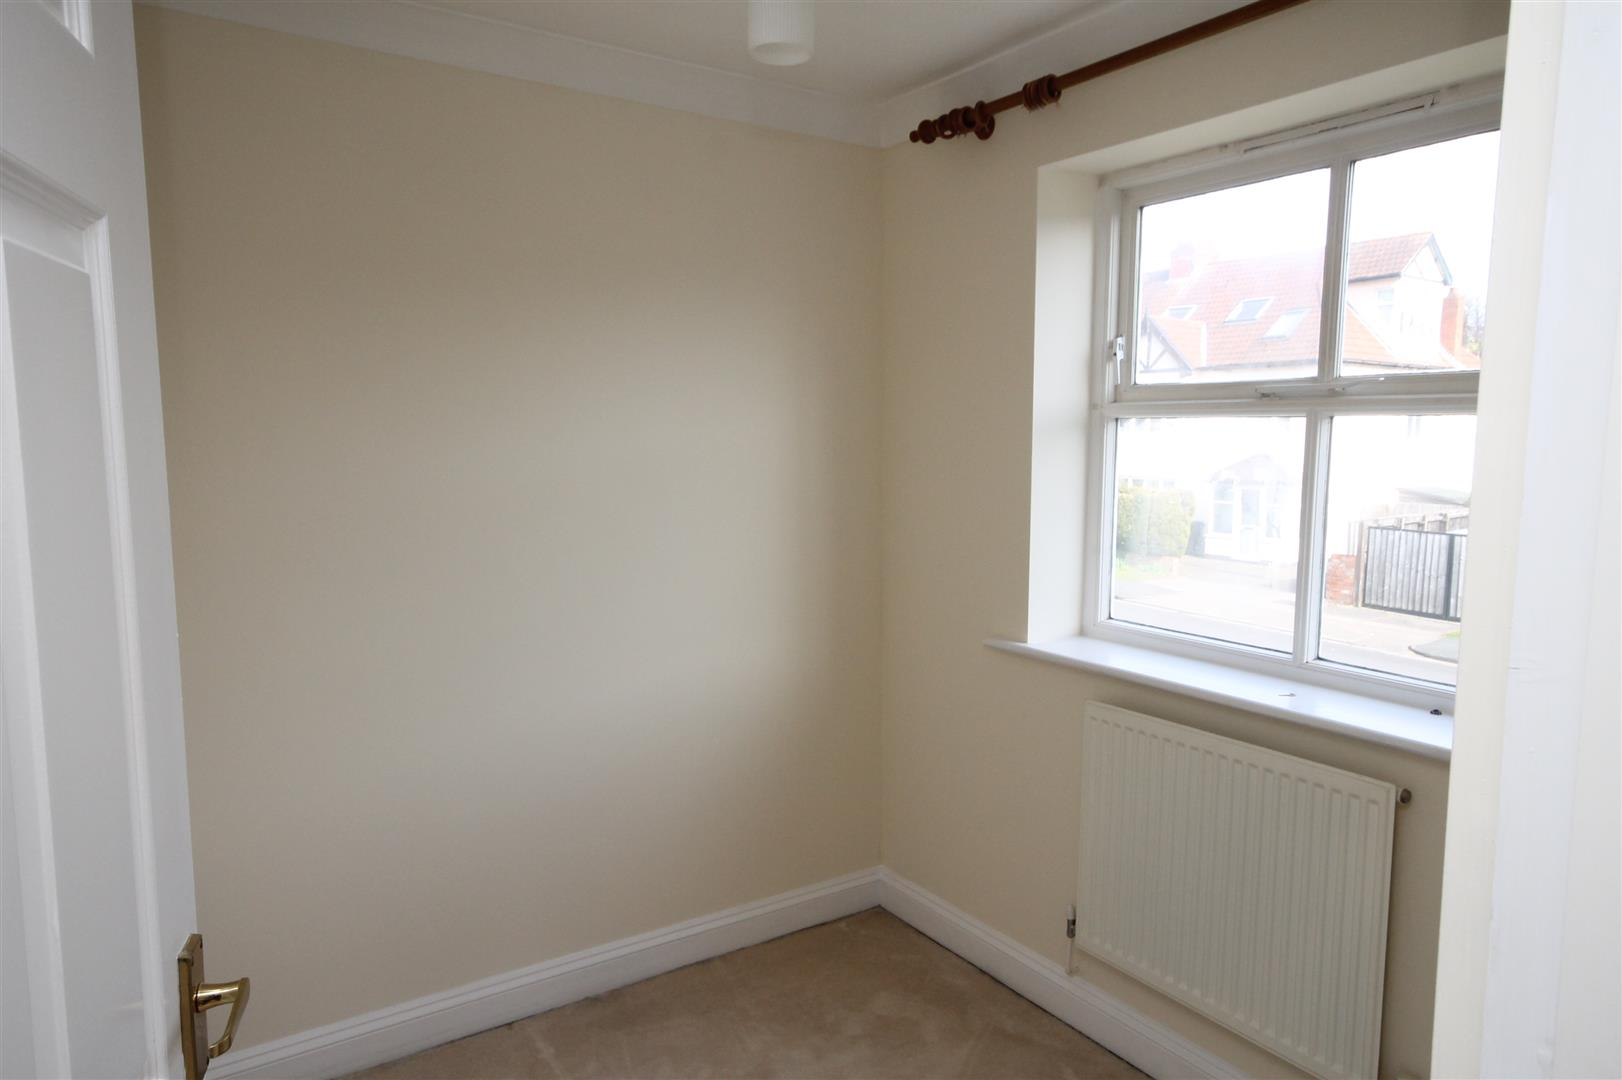 4 bed house to rent in Reedley Road, Bristol 8